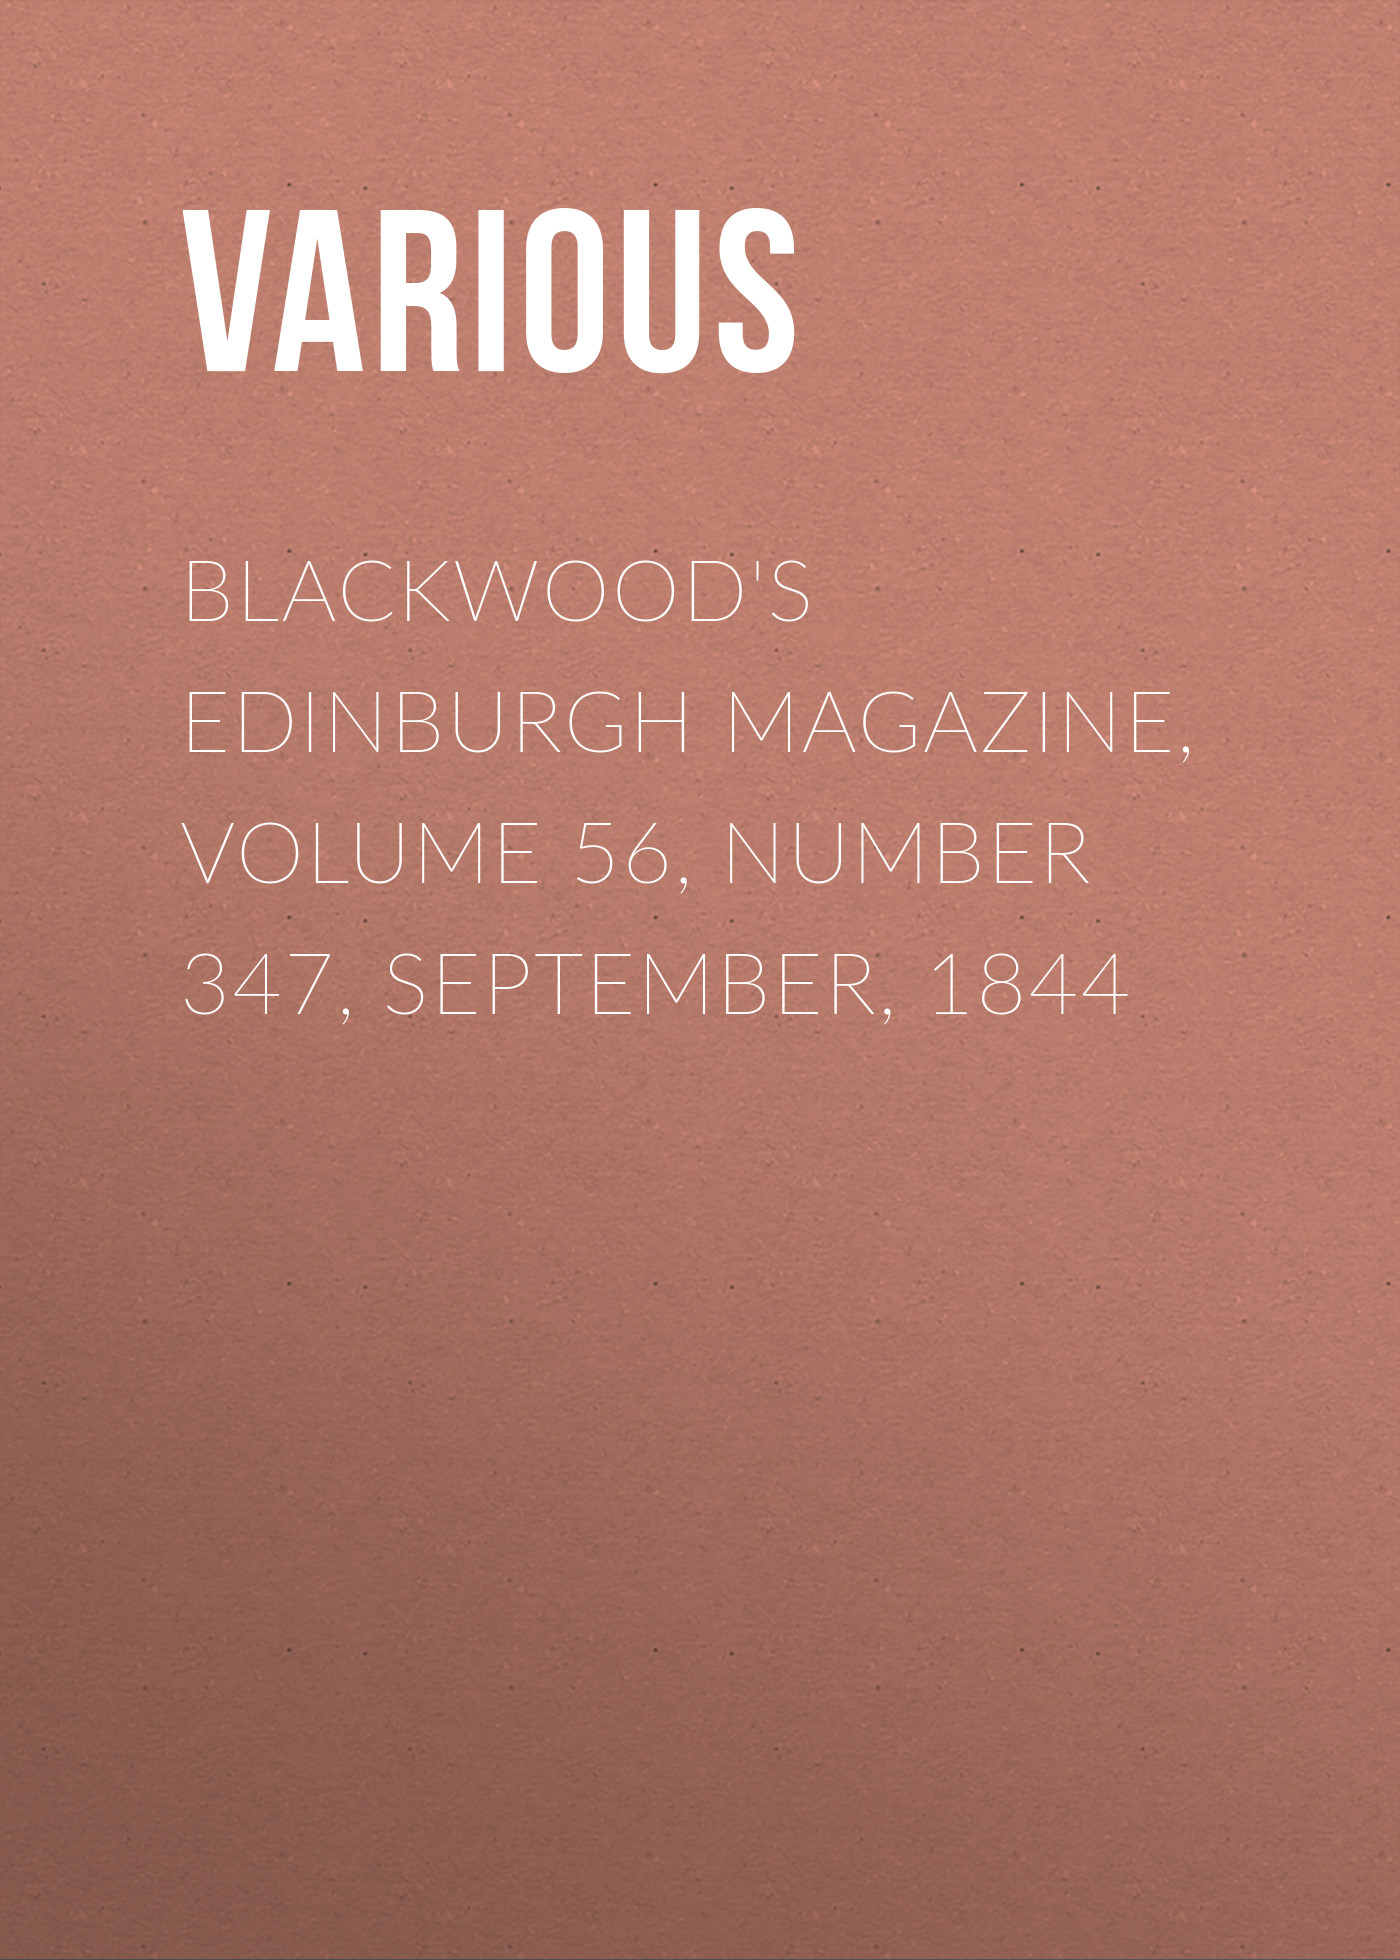 Blackwood\'s Edinburgh Magazine, Volume 56, Number 347, September, 1844 ( Various  )